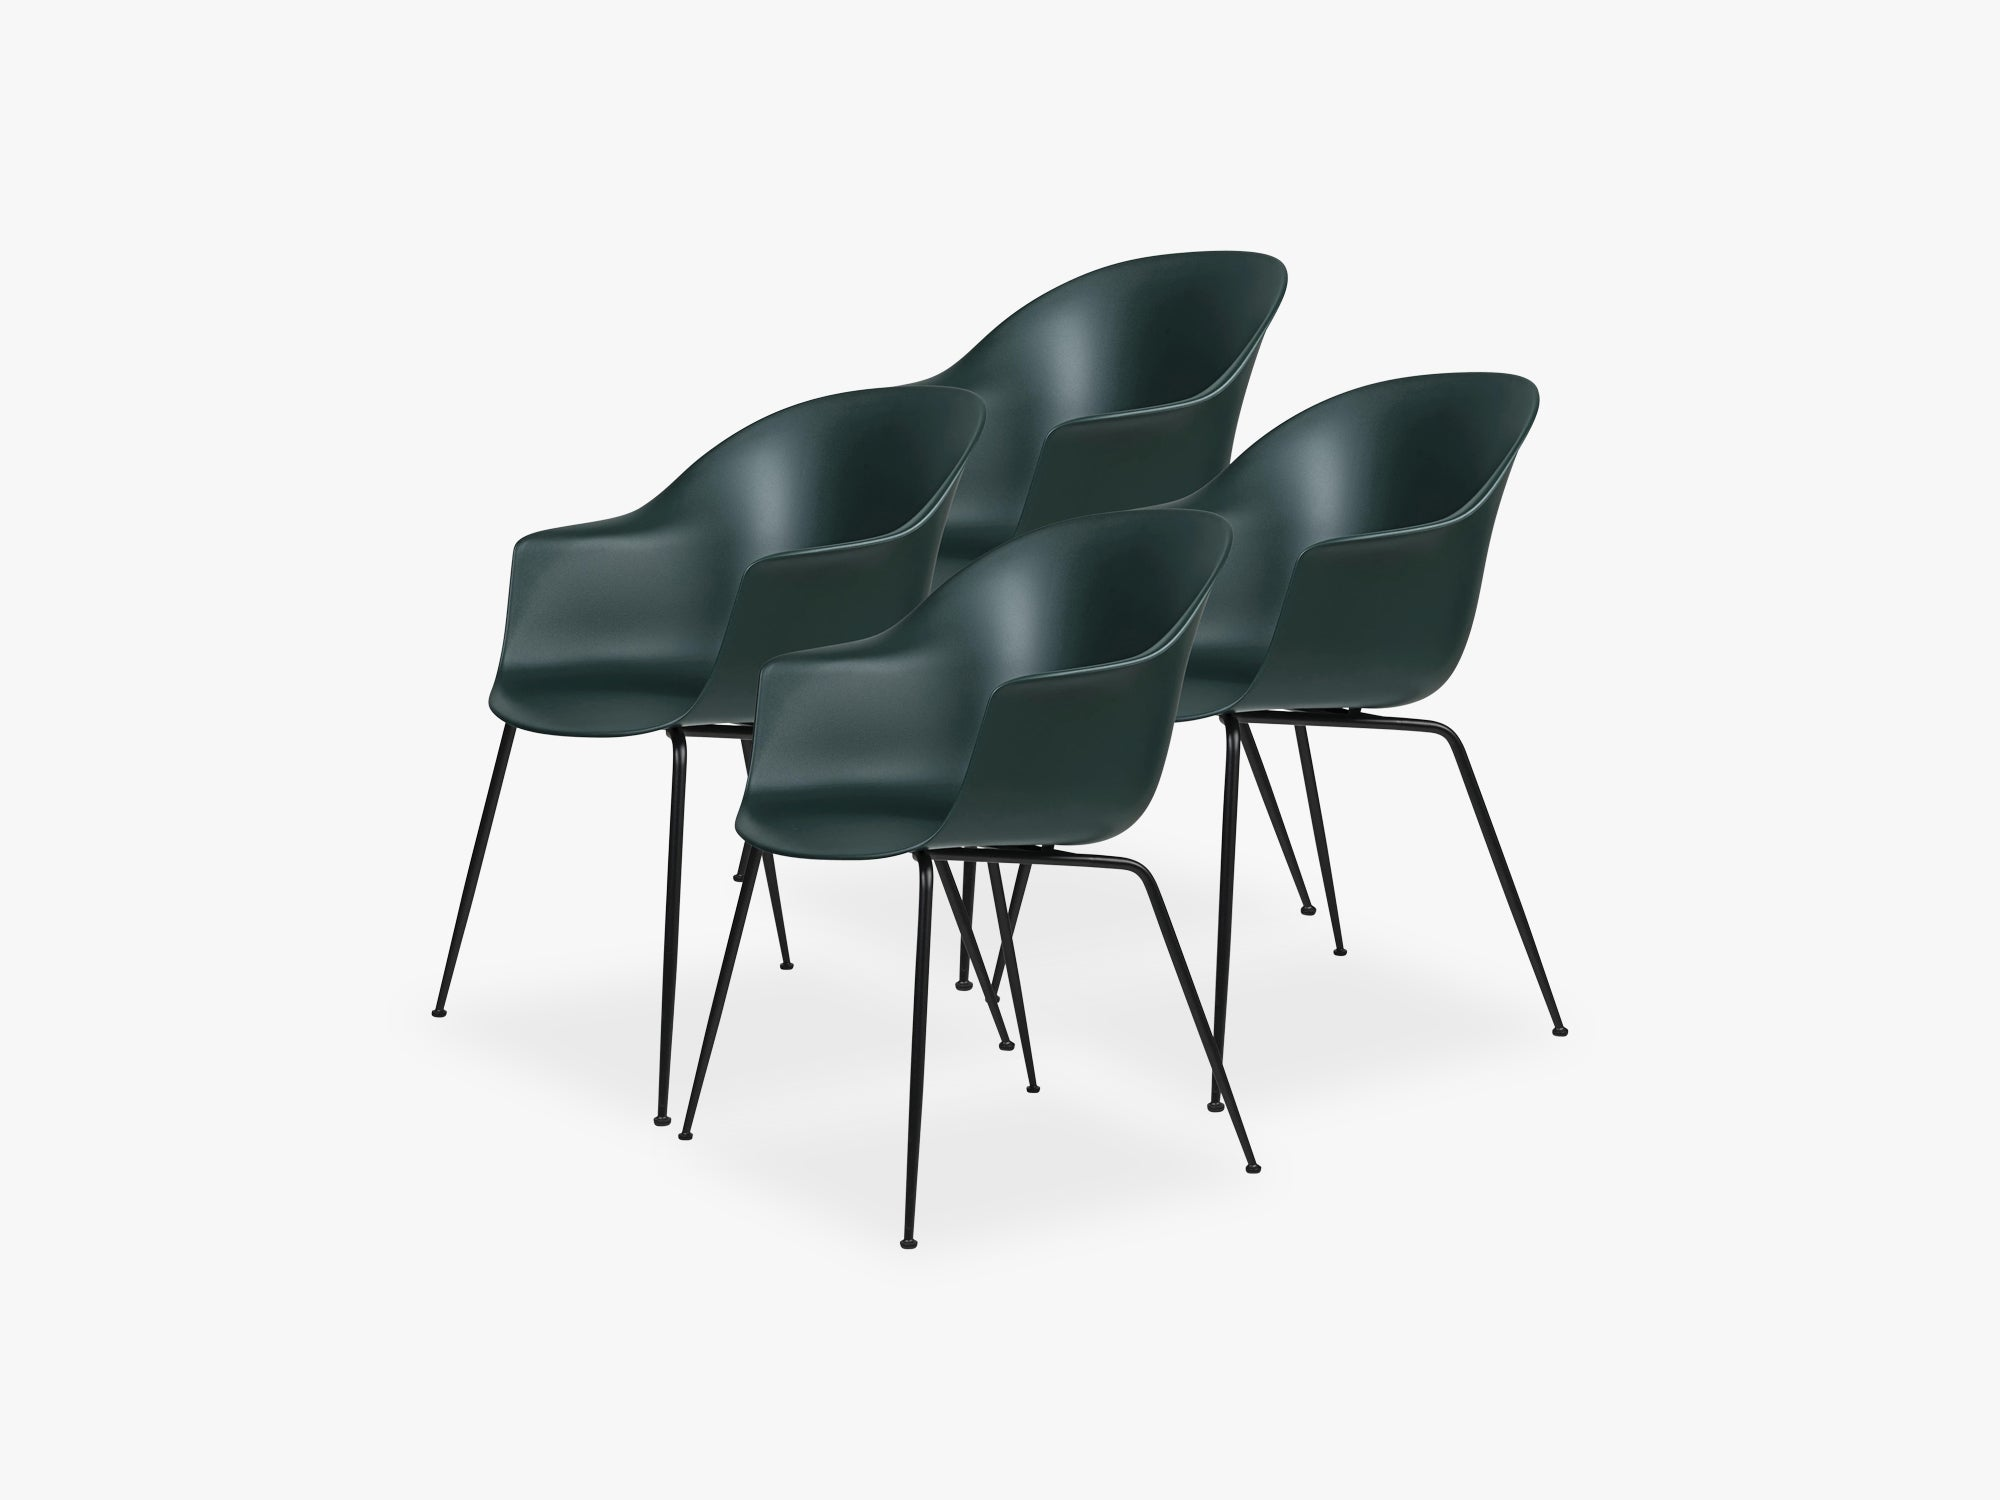 Bat Dining Chair 4 pcs - Conic Black Matt Base, Dark Green fra GUBI